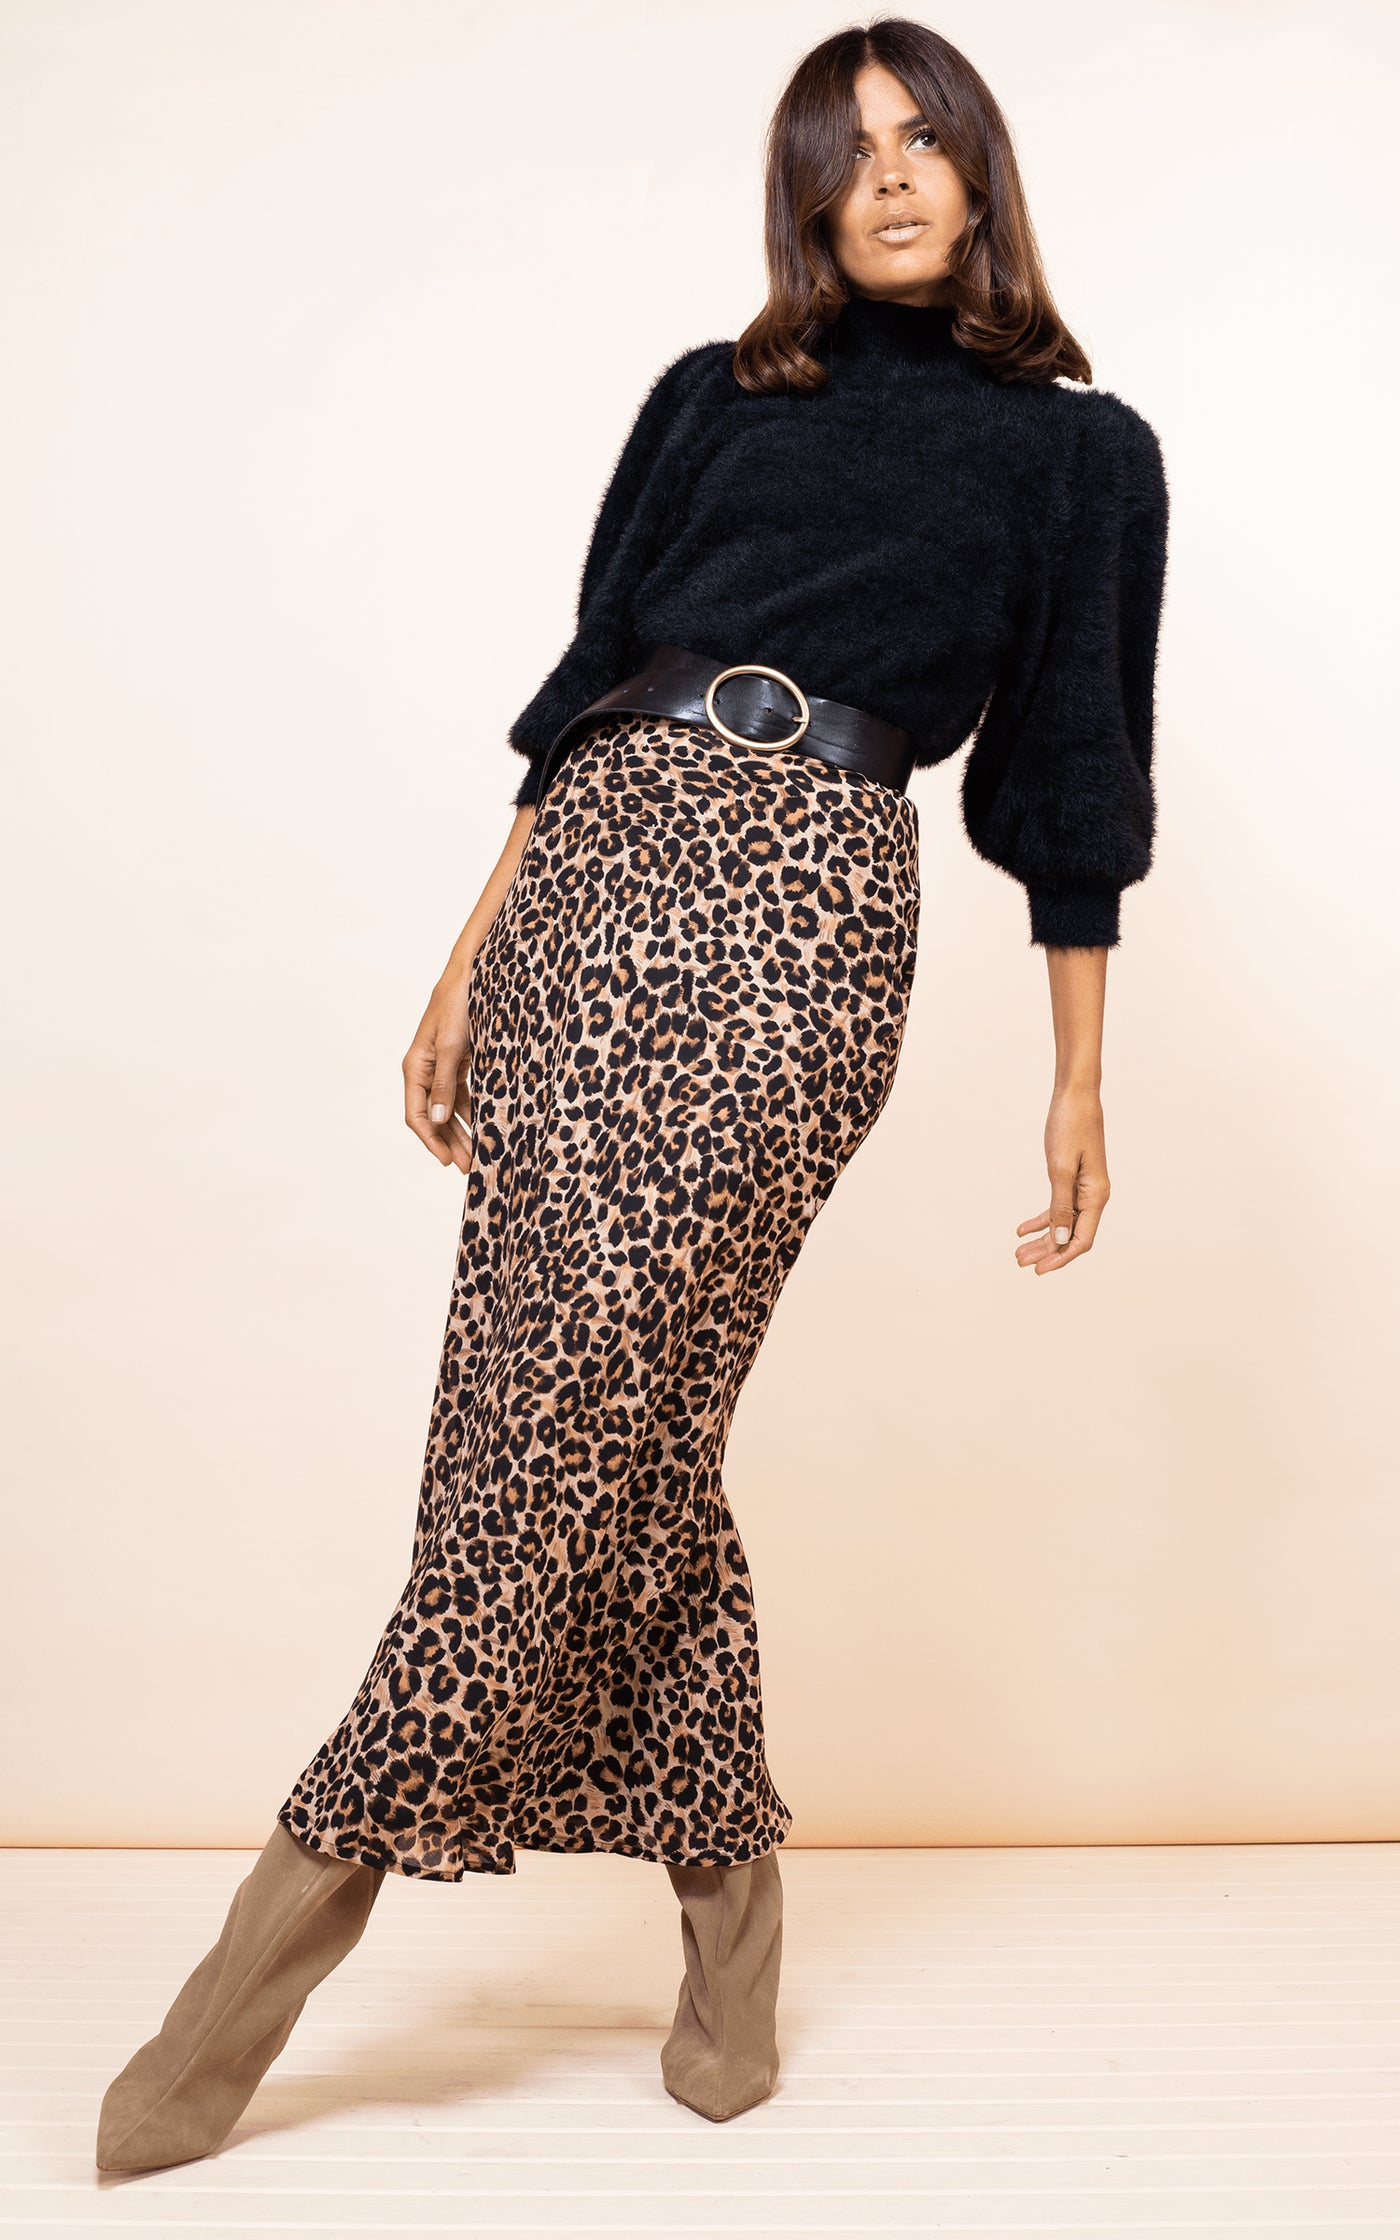 Dancing Leopard model faces forward wearing Sophie Skirt in Rich Leopard print with black fluffy jumper